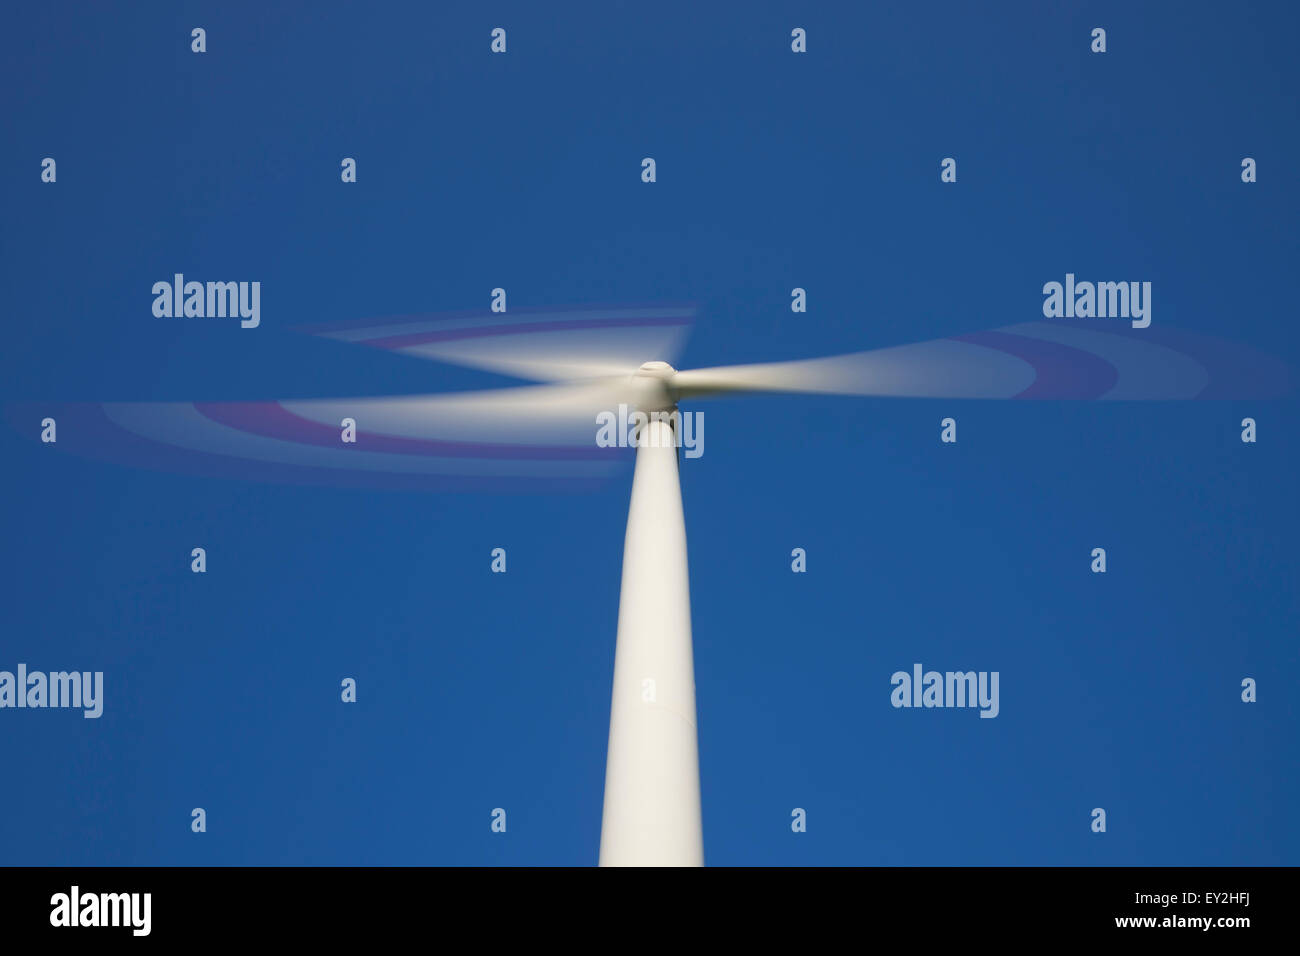 Worm's eye view on spinning rotor blades of wind turbine against blue sky - Stock Image